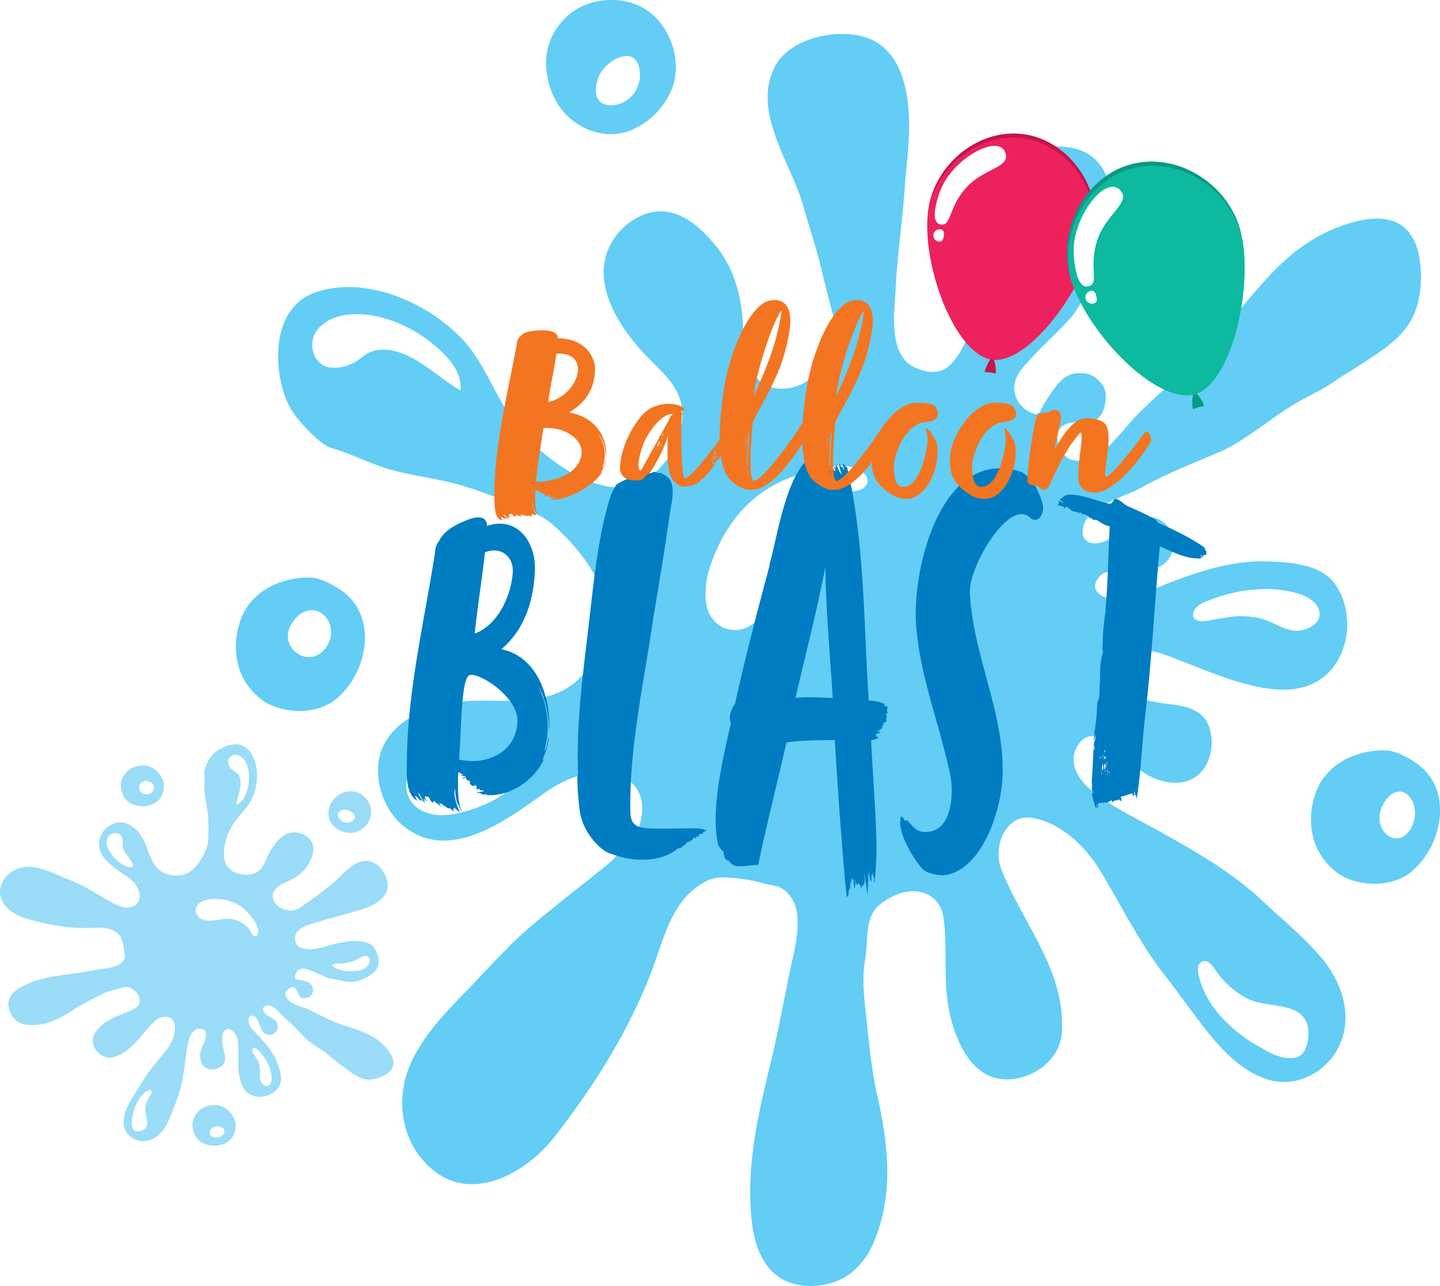 Captains Balloon Blast